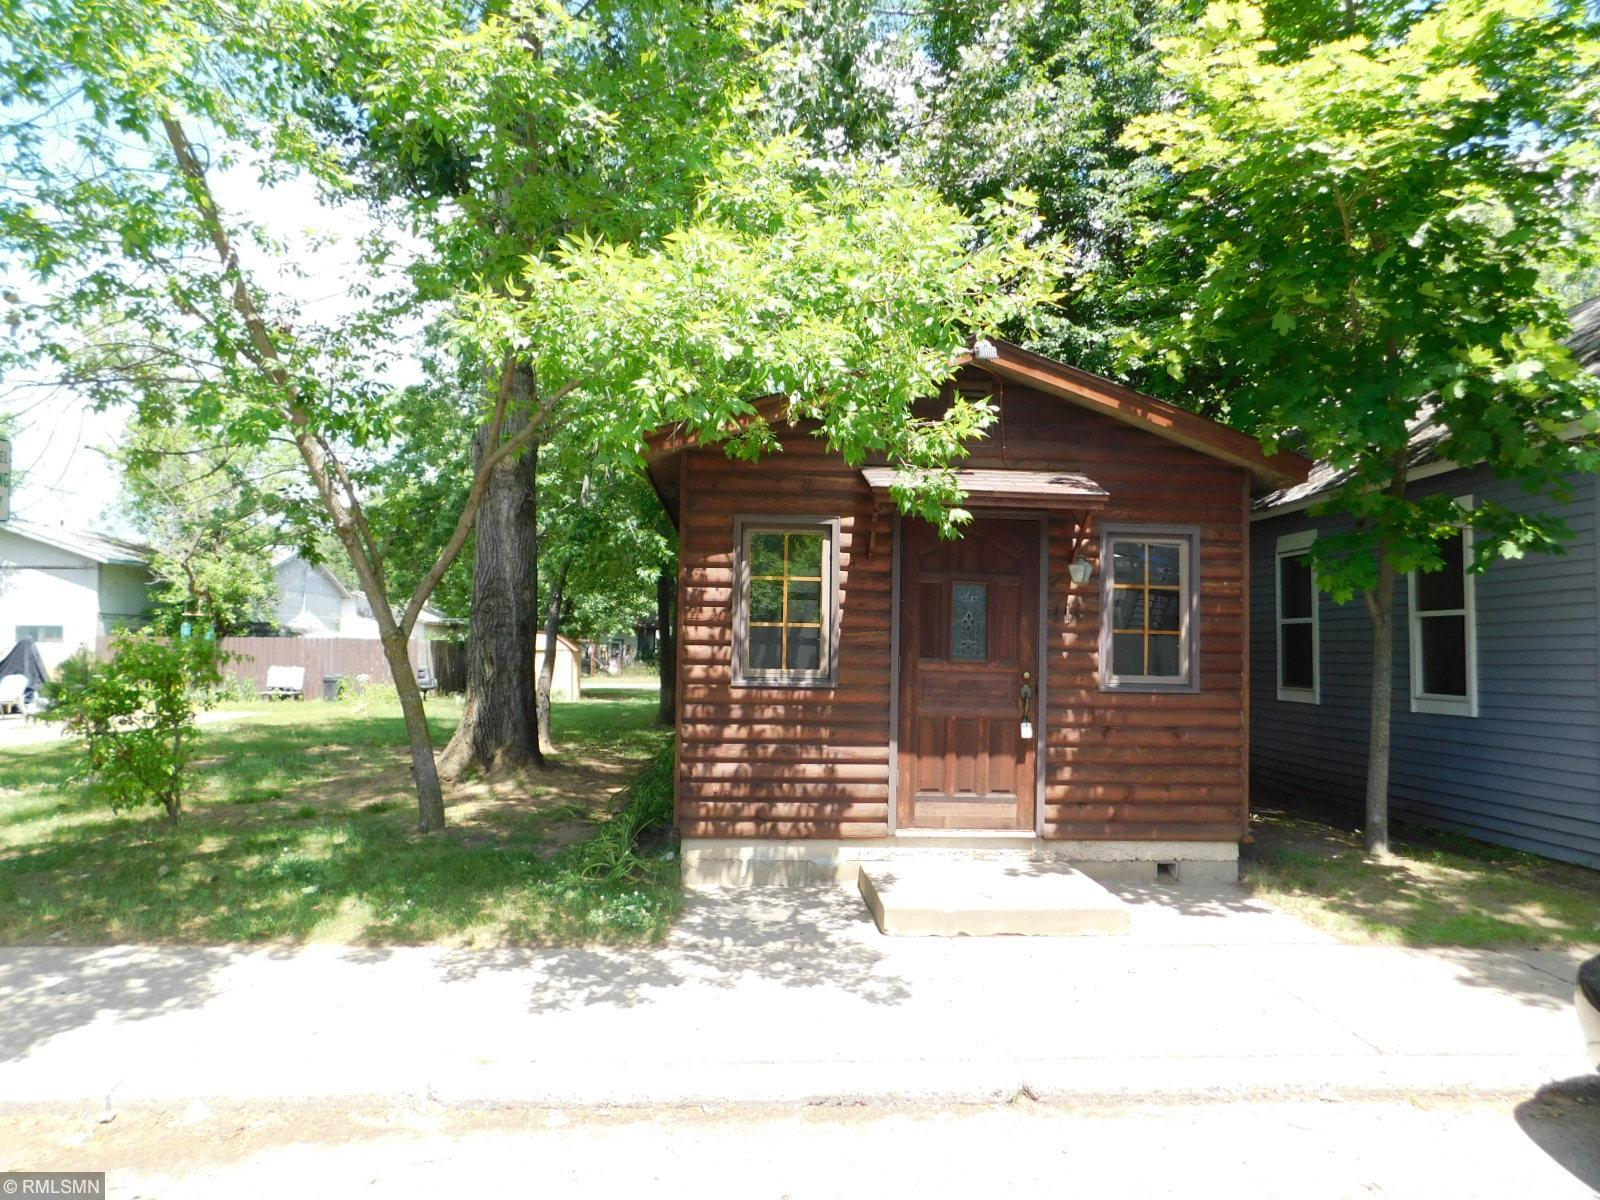 111 Main Property Photo - Bethel, MN real estate listing